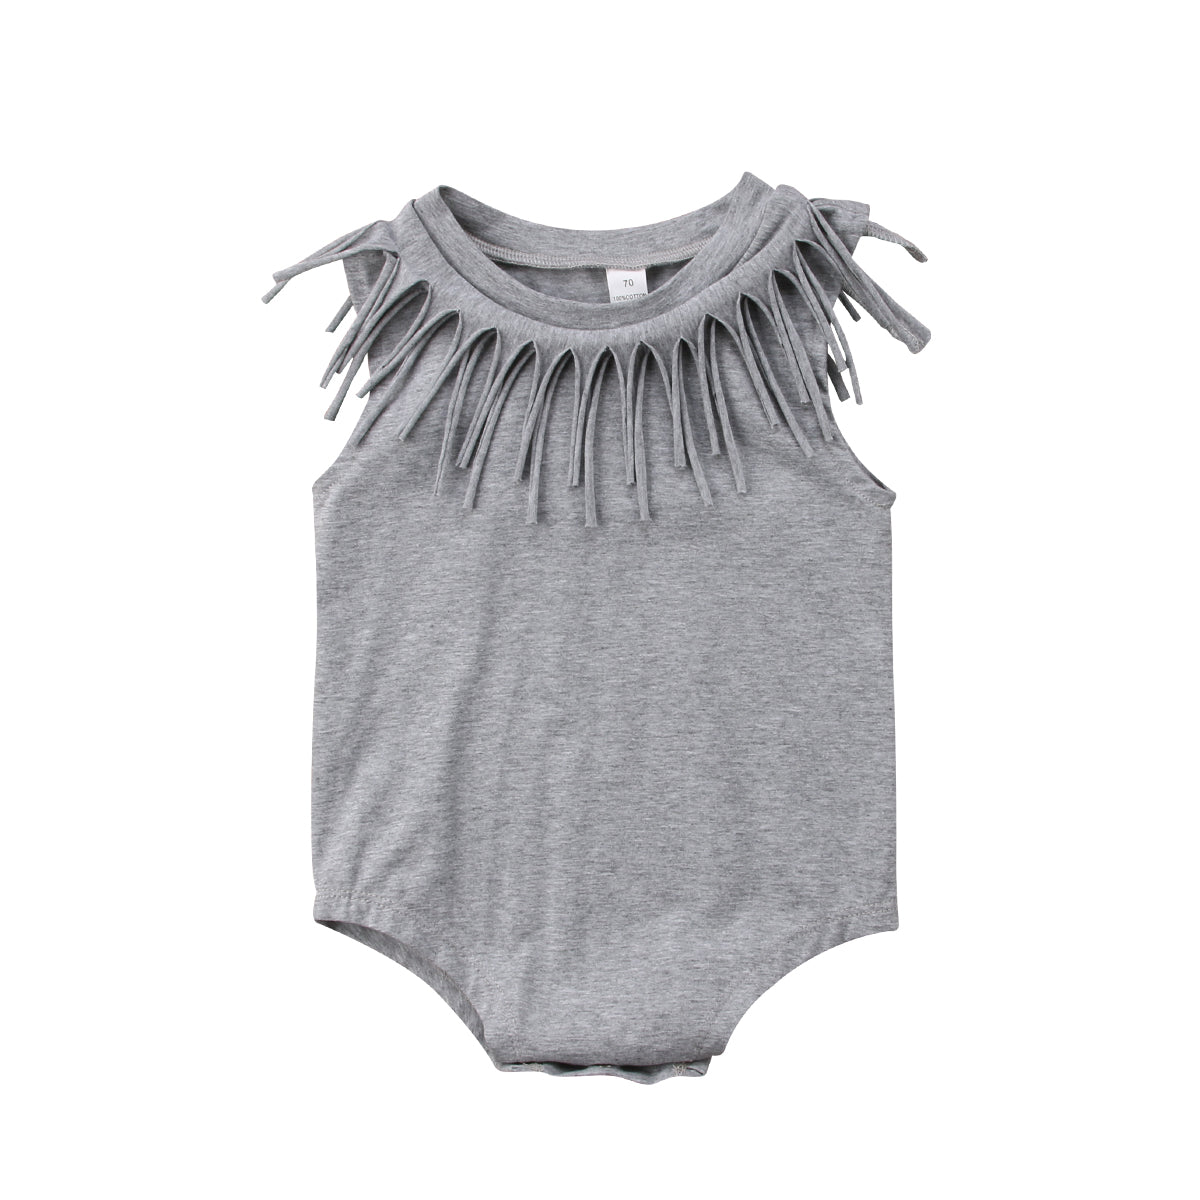 Tee Fringe Onesie - 3 Colors